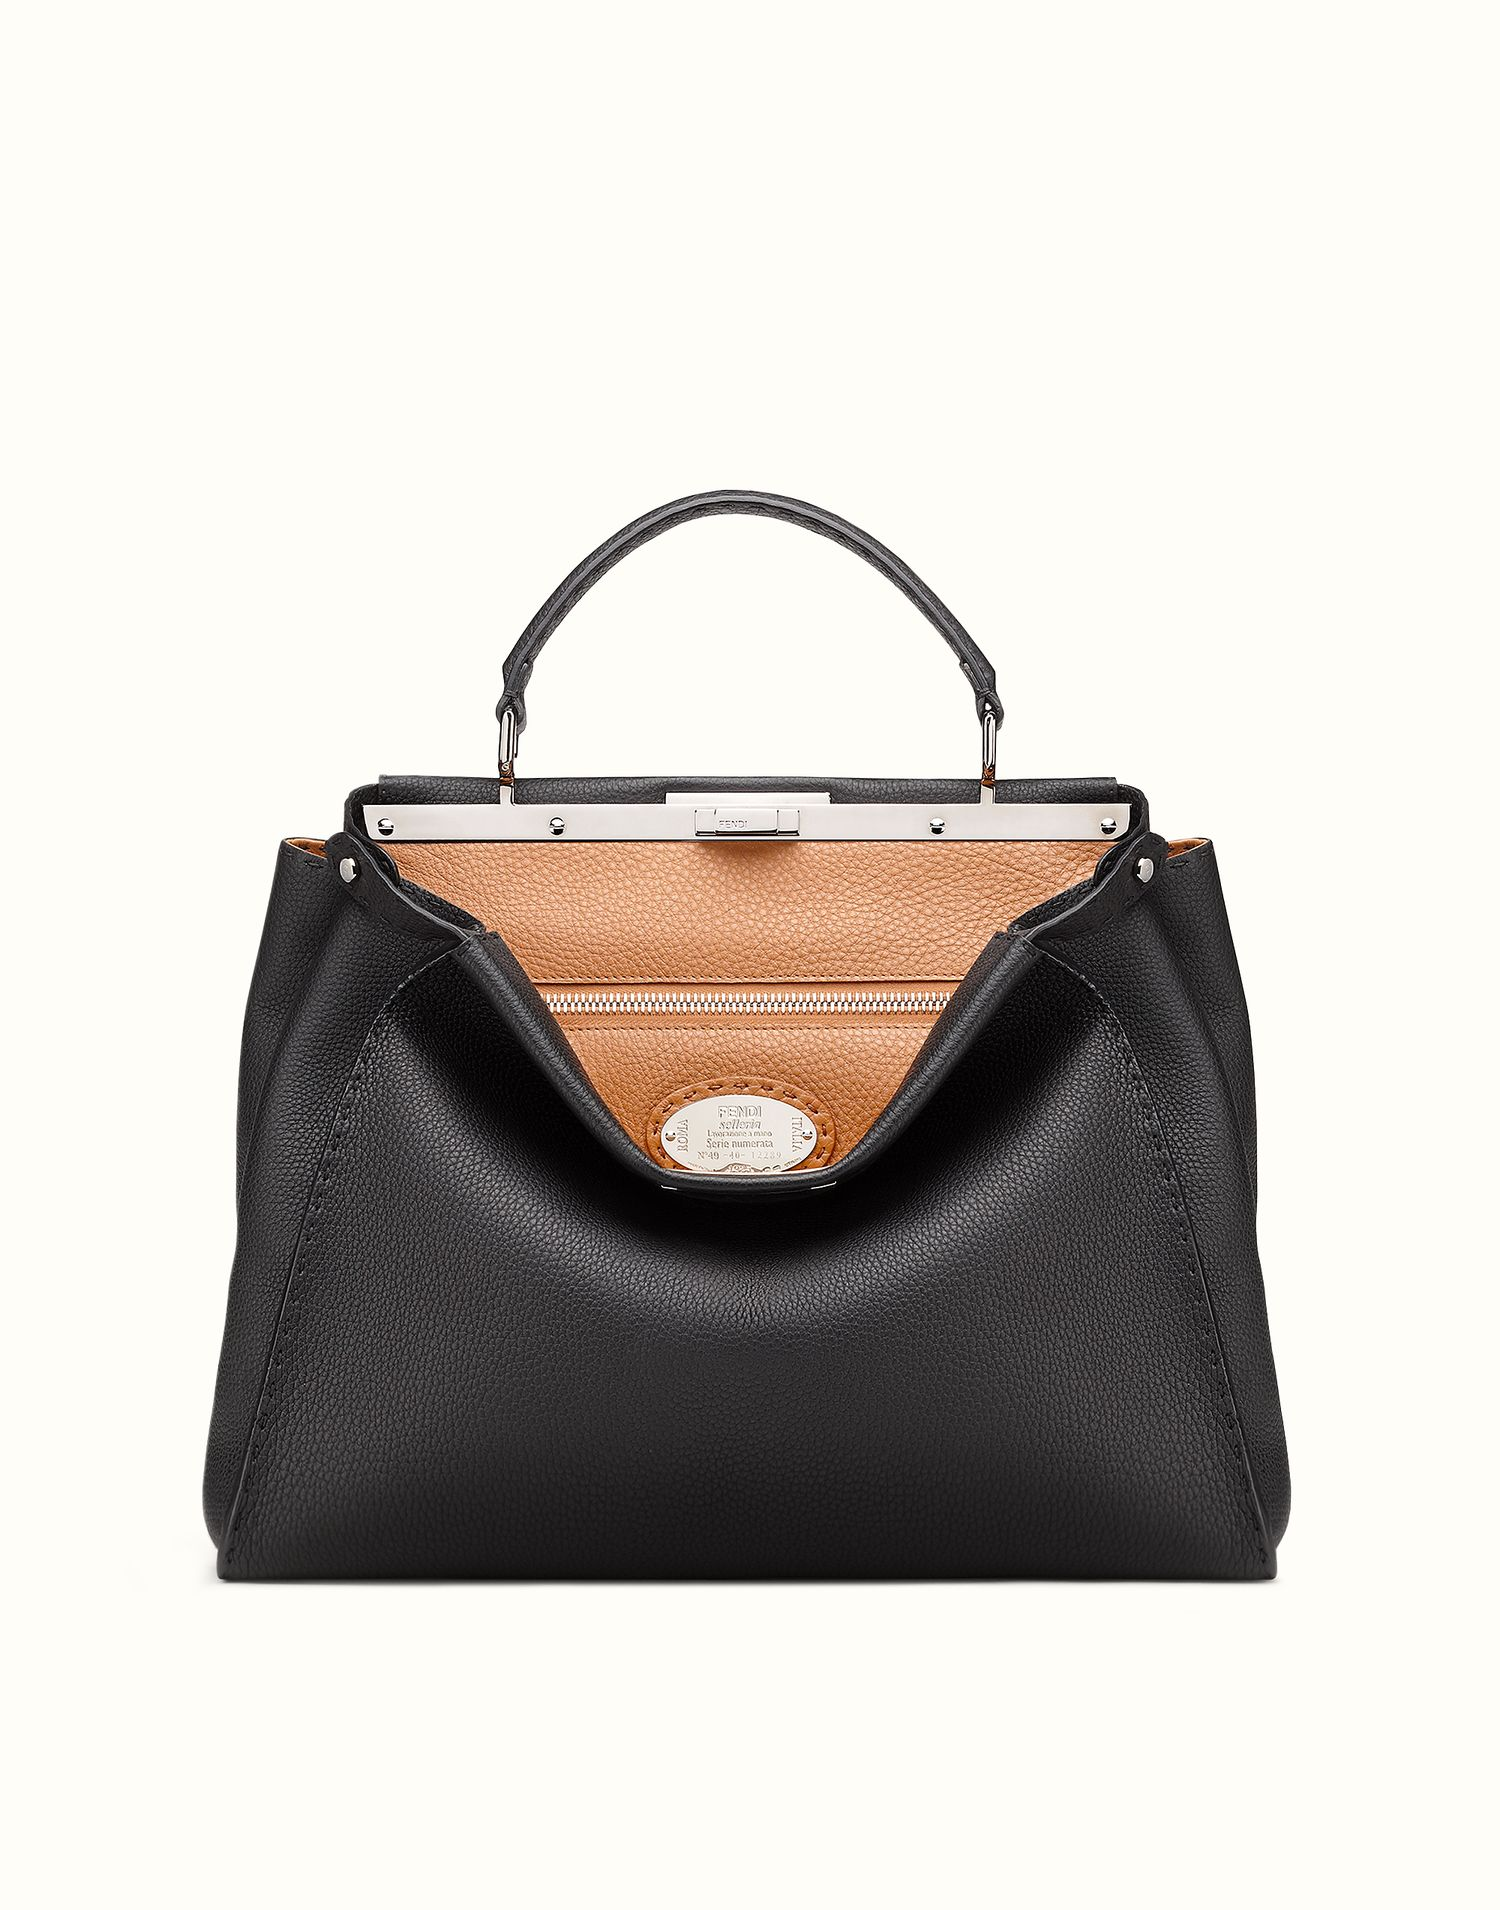 36da5fb9319c FENDI | SELLERIA PEEKABOO handbag in black Roman leather. Like the smooth  leather better but that version not big enough.